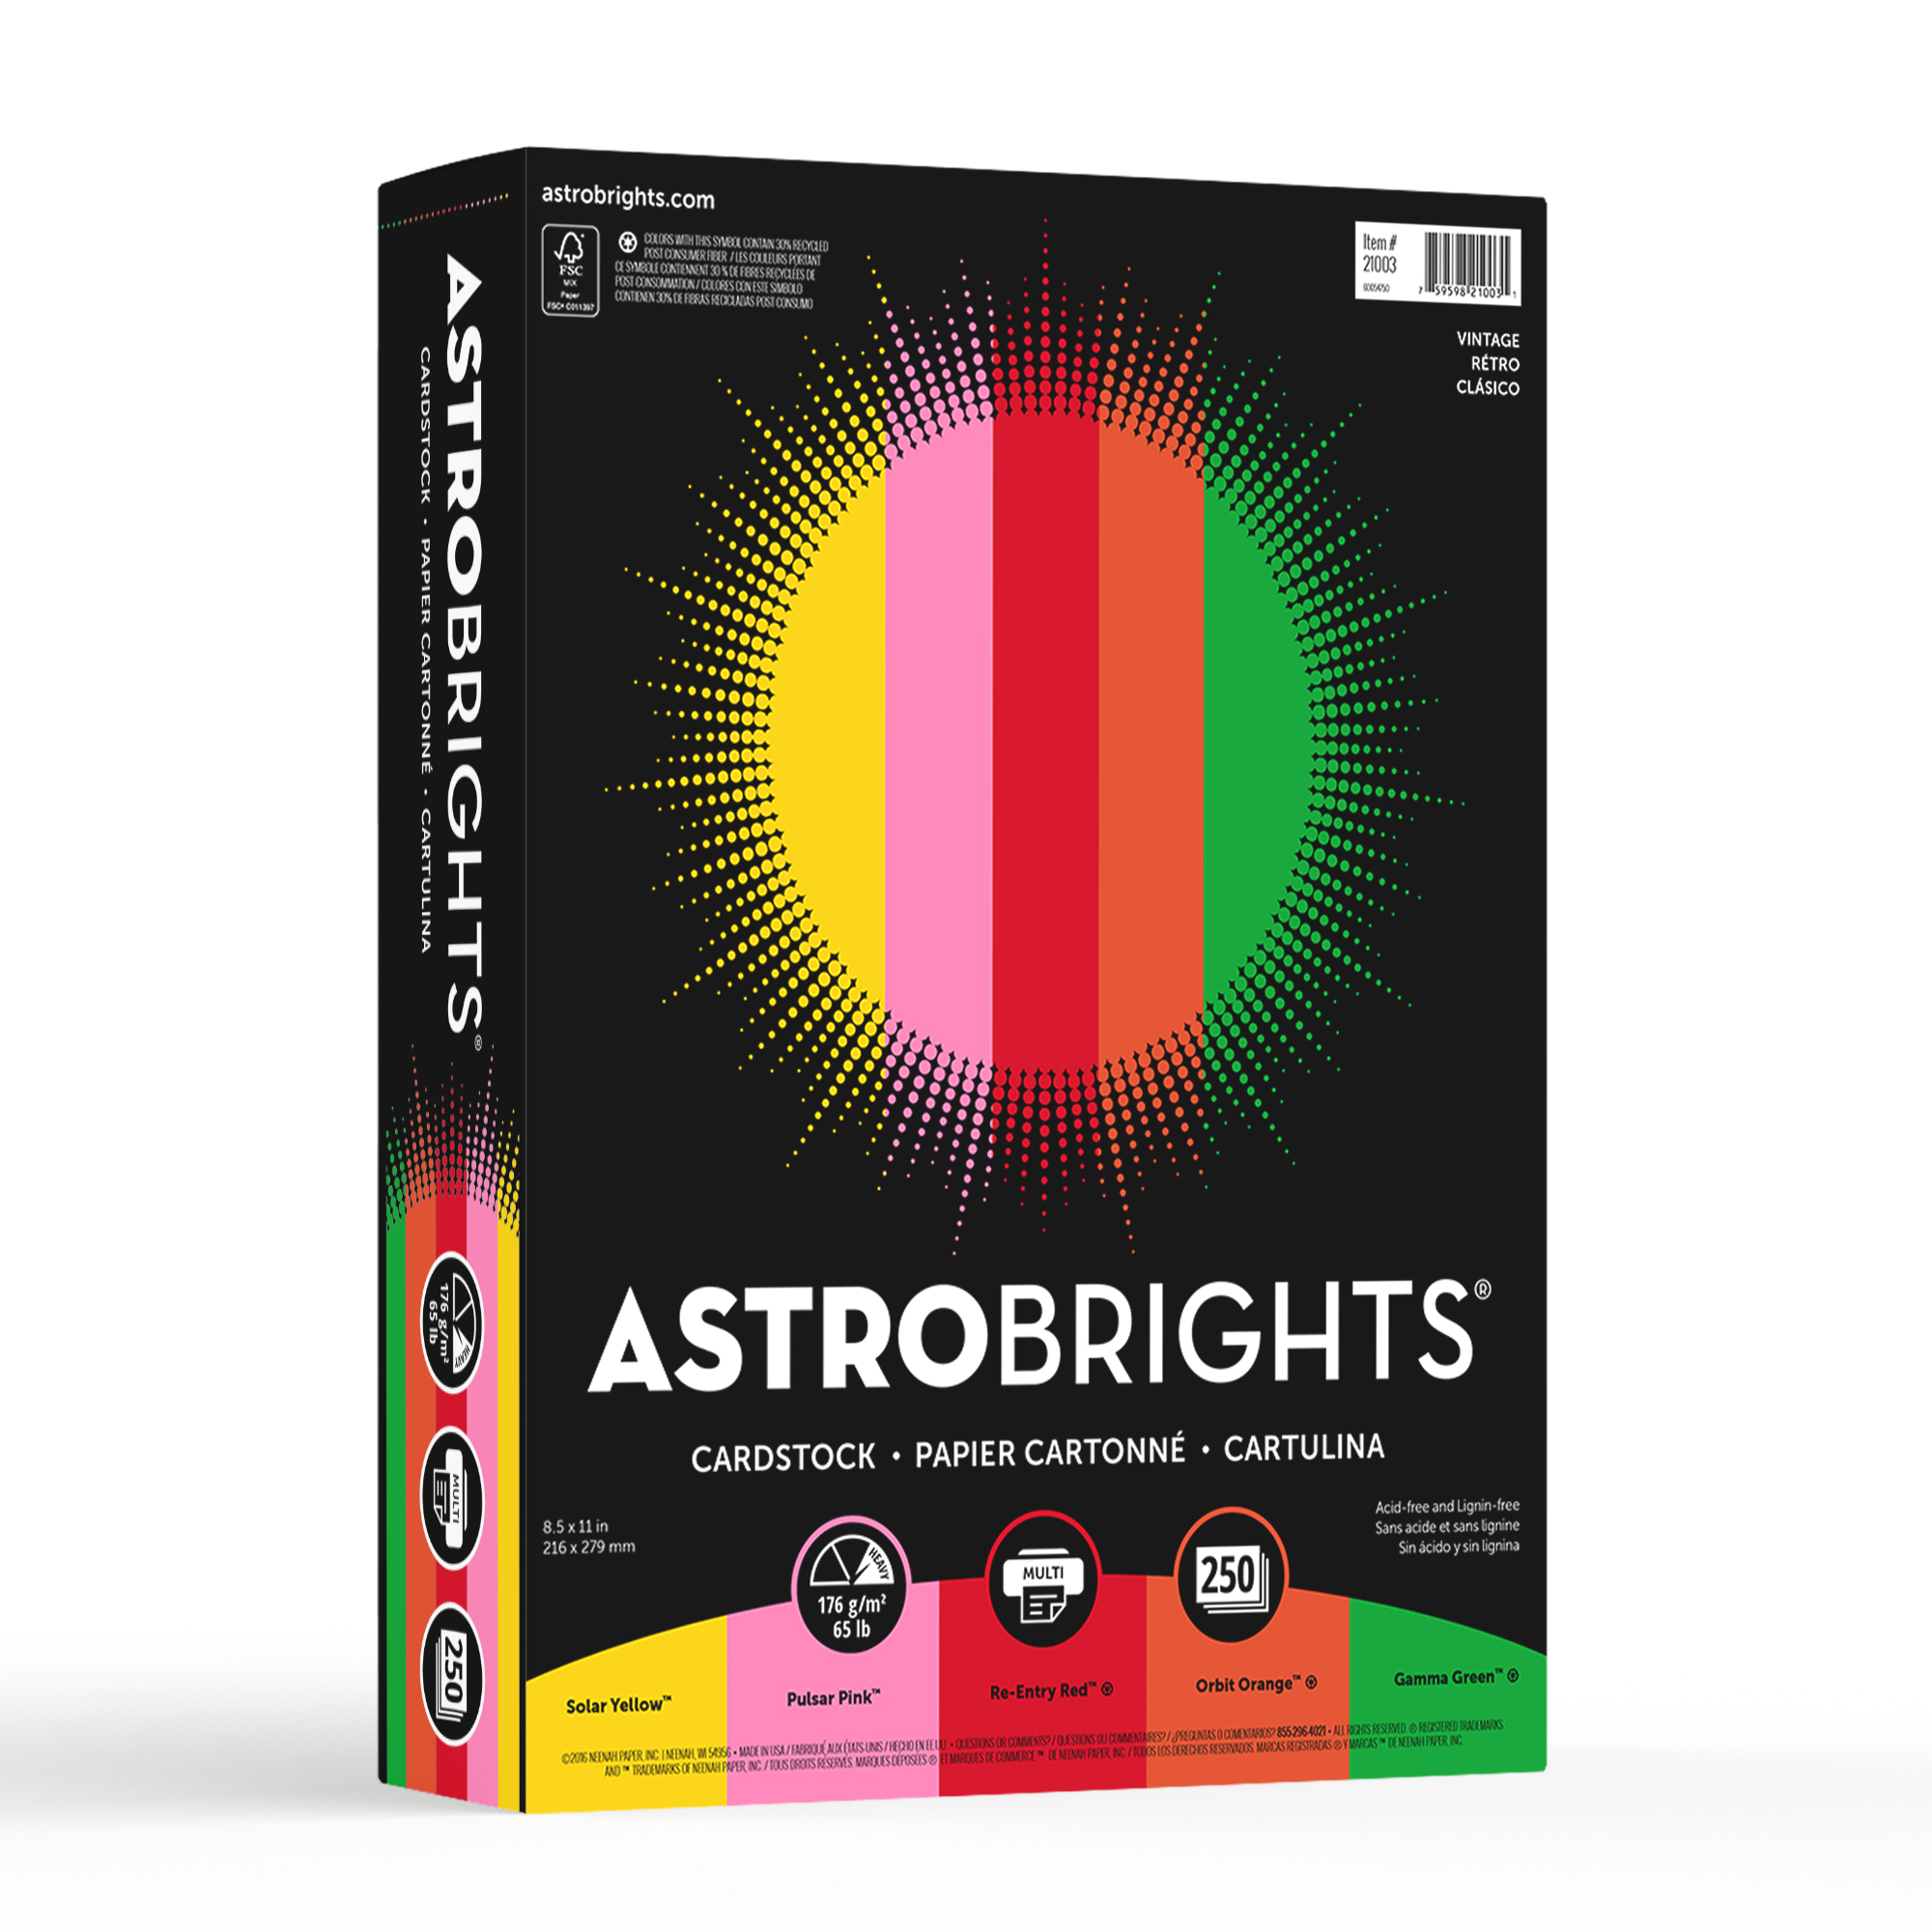 Color Cardstock, 65lb, 8 1/2 x 11, Assorted, 250 Sheets